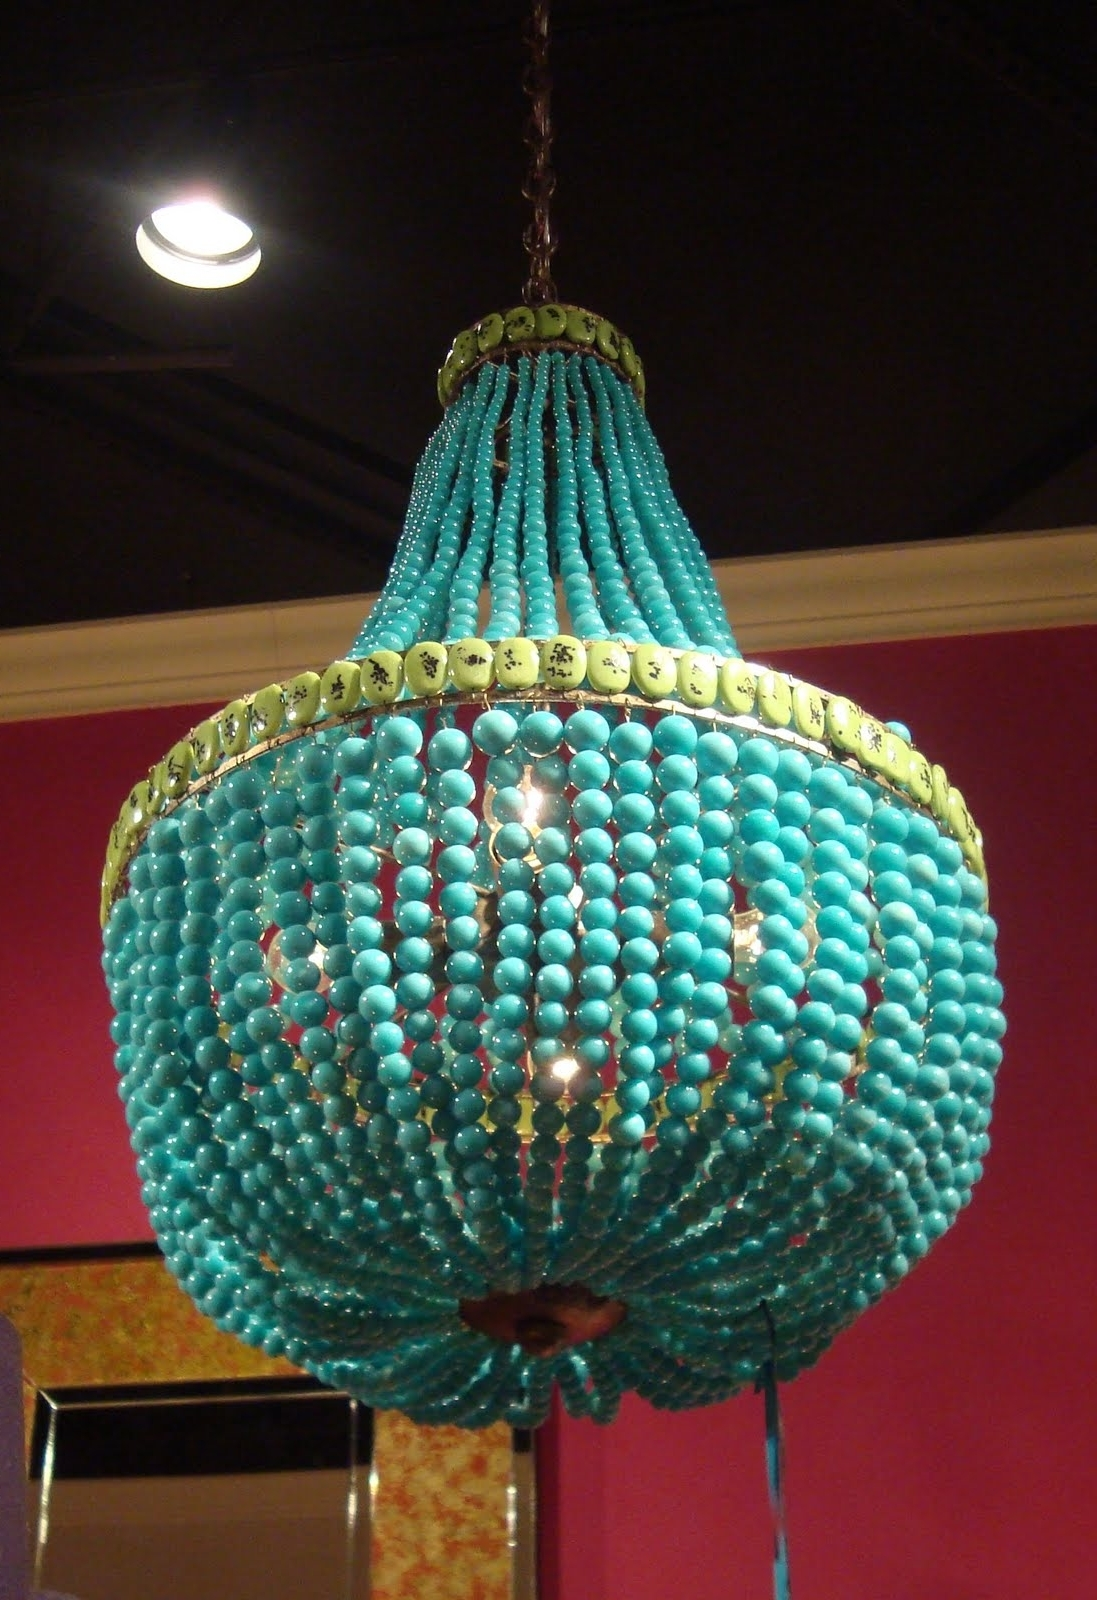 Turquoise Beads Six Light Chandeliers With Regard To Recent Turquoise Chandelier Lighting (View 19 of 20)